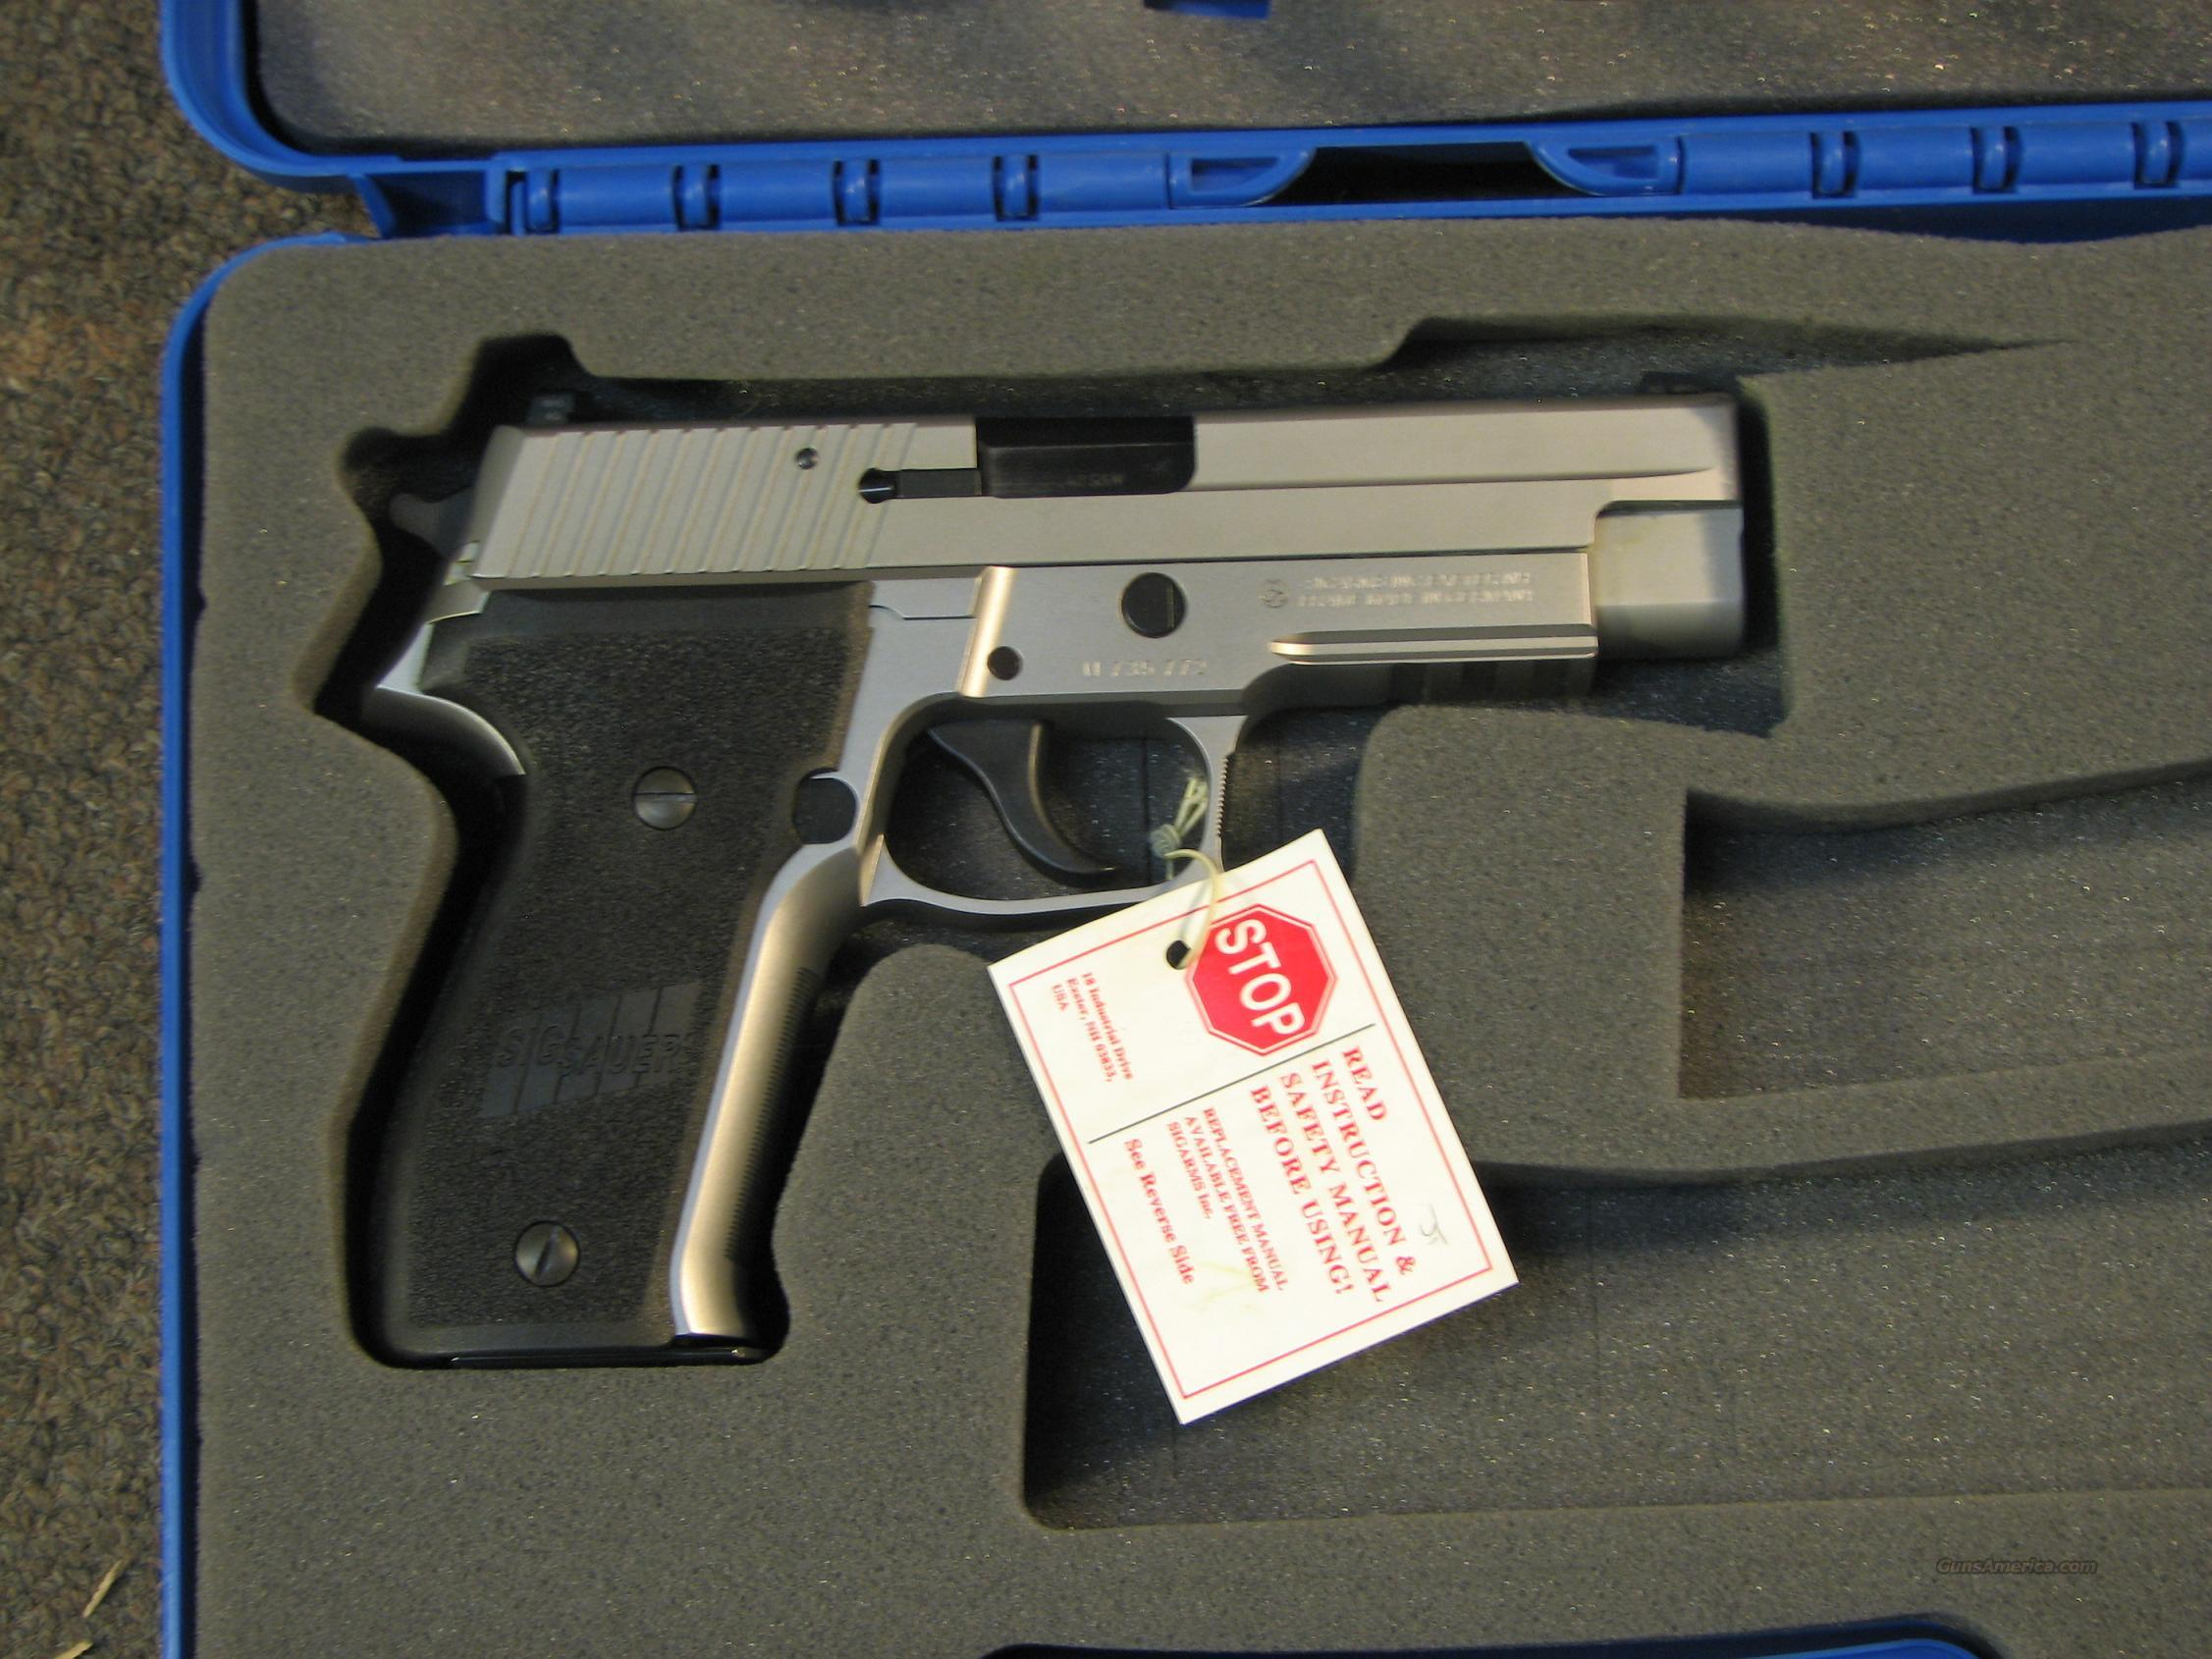 SIG SAUER P226 STAINLESS .40 S&W  Guns > Pistols > Sig - Sauer/Sigarms Pistols > P226